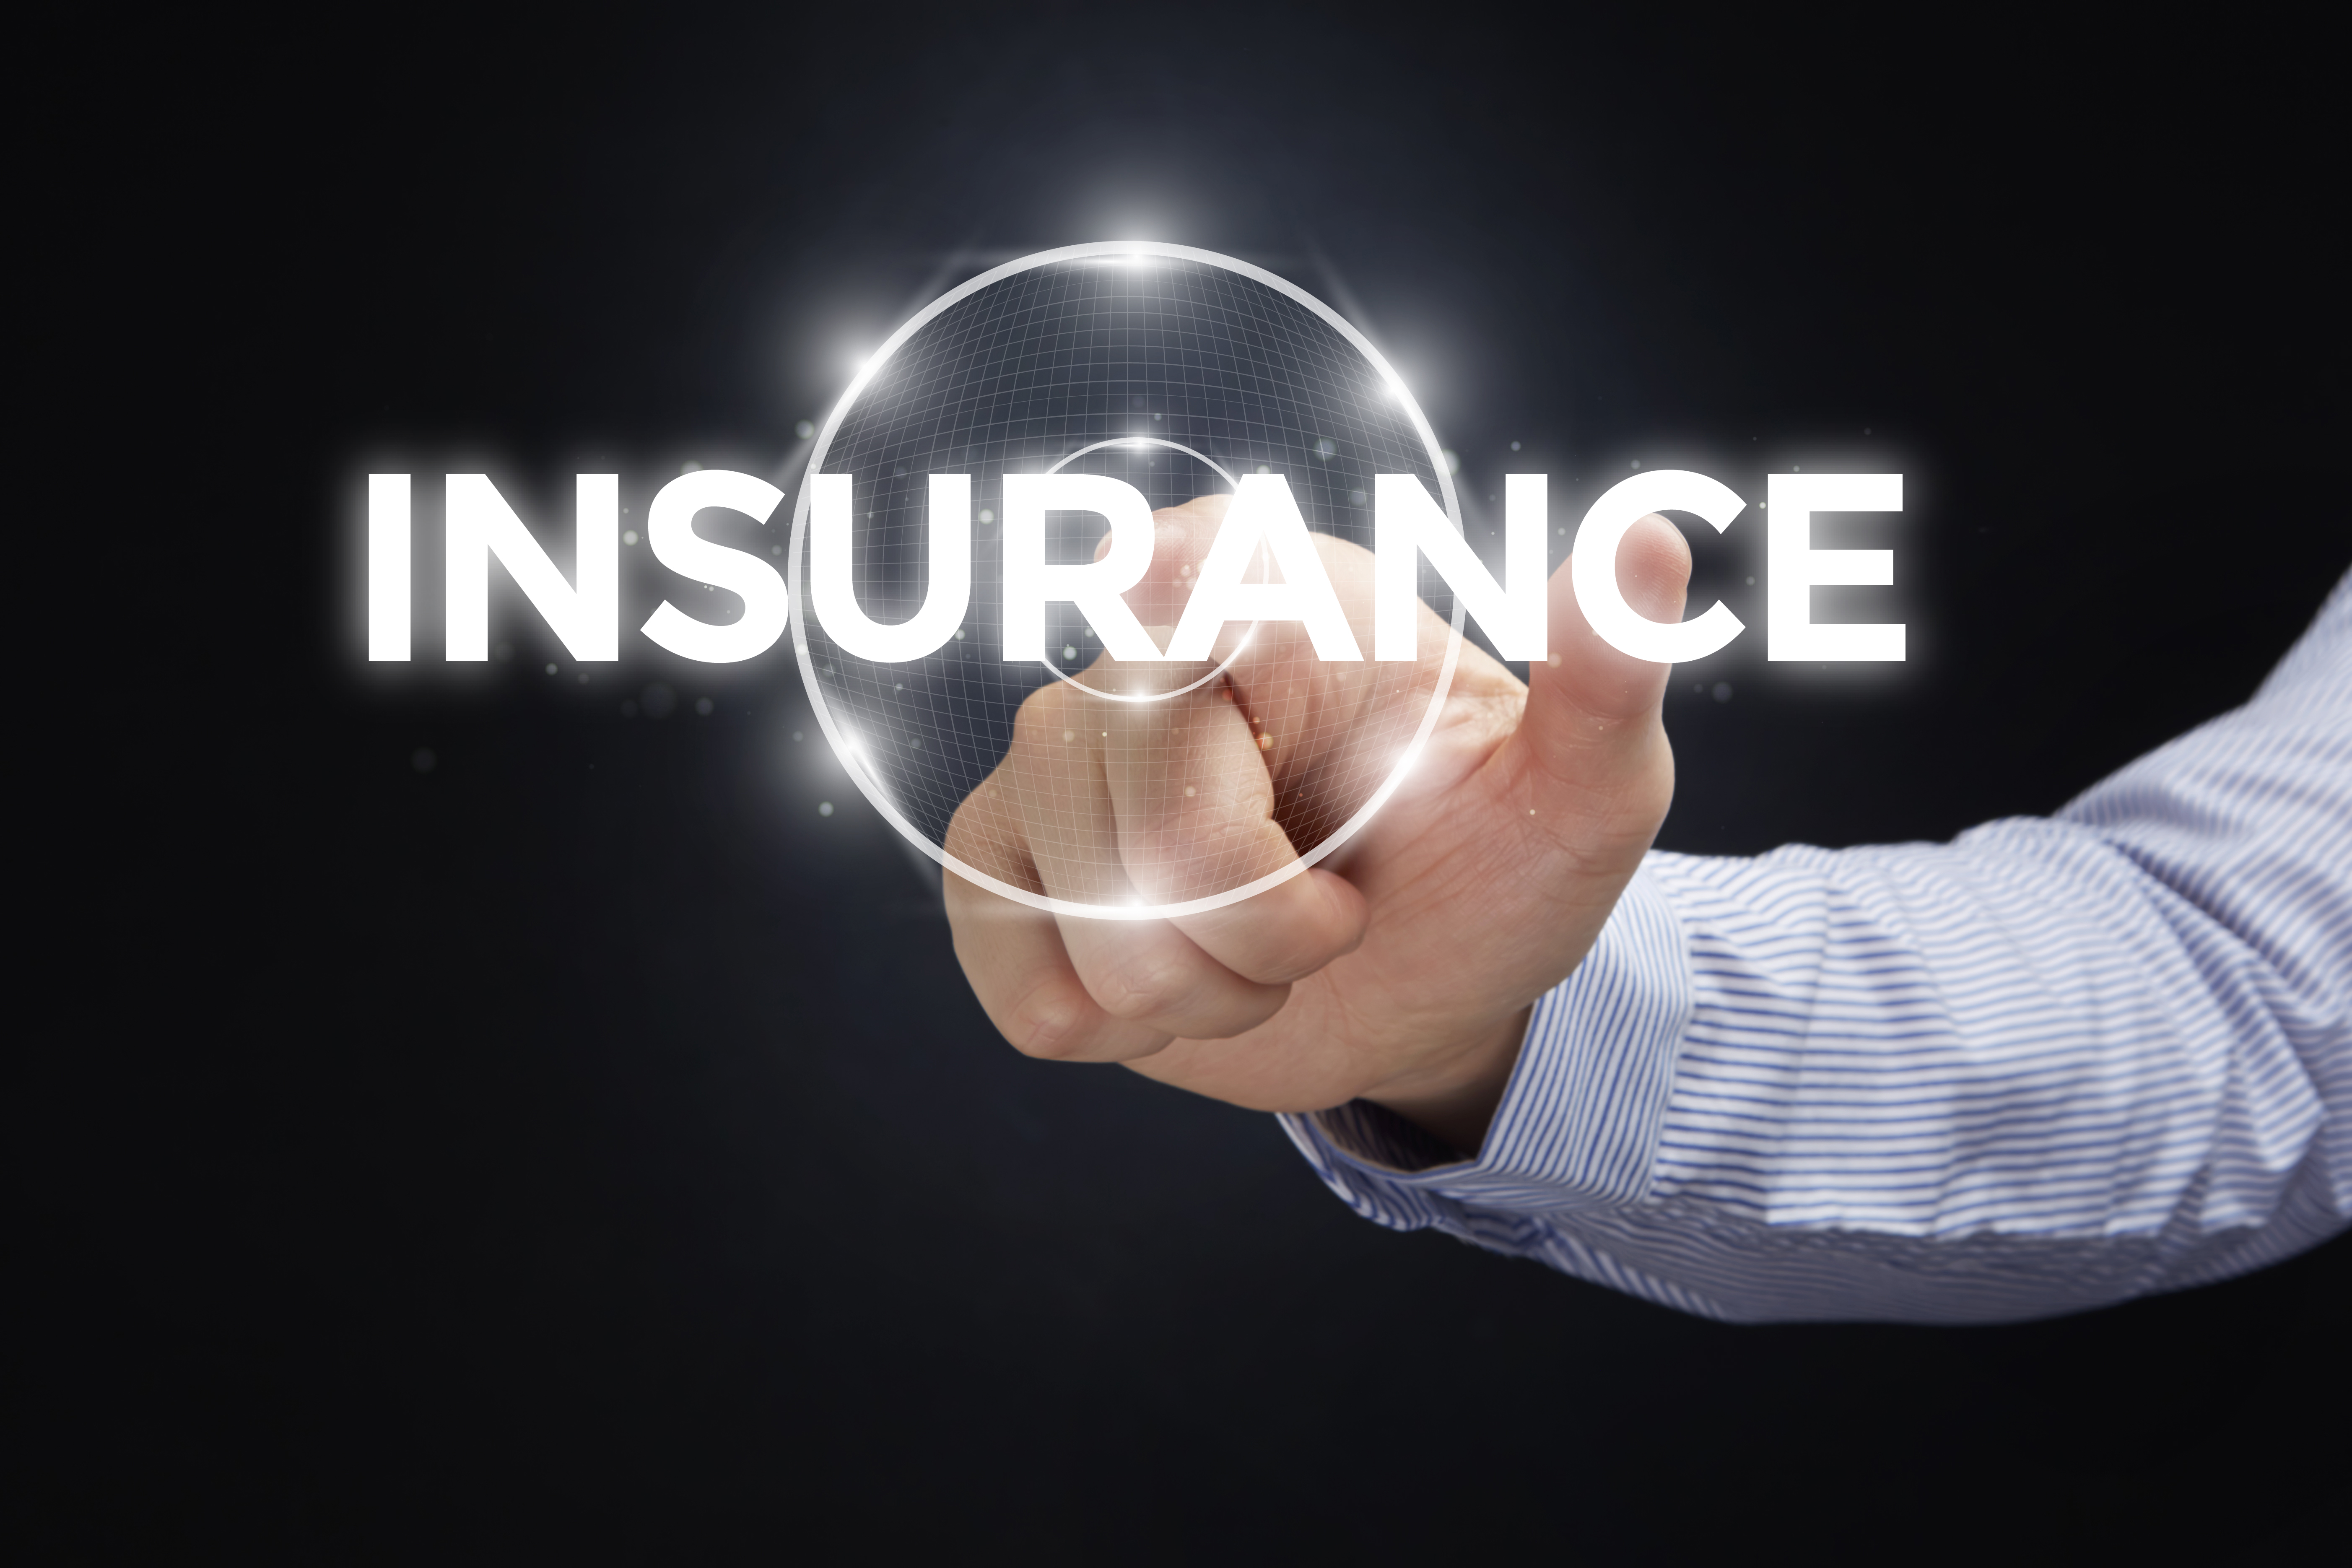 finger pointing at insurance text